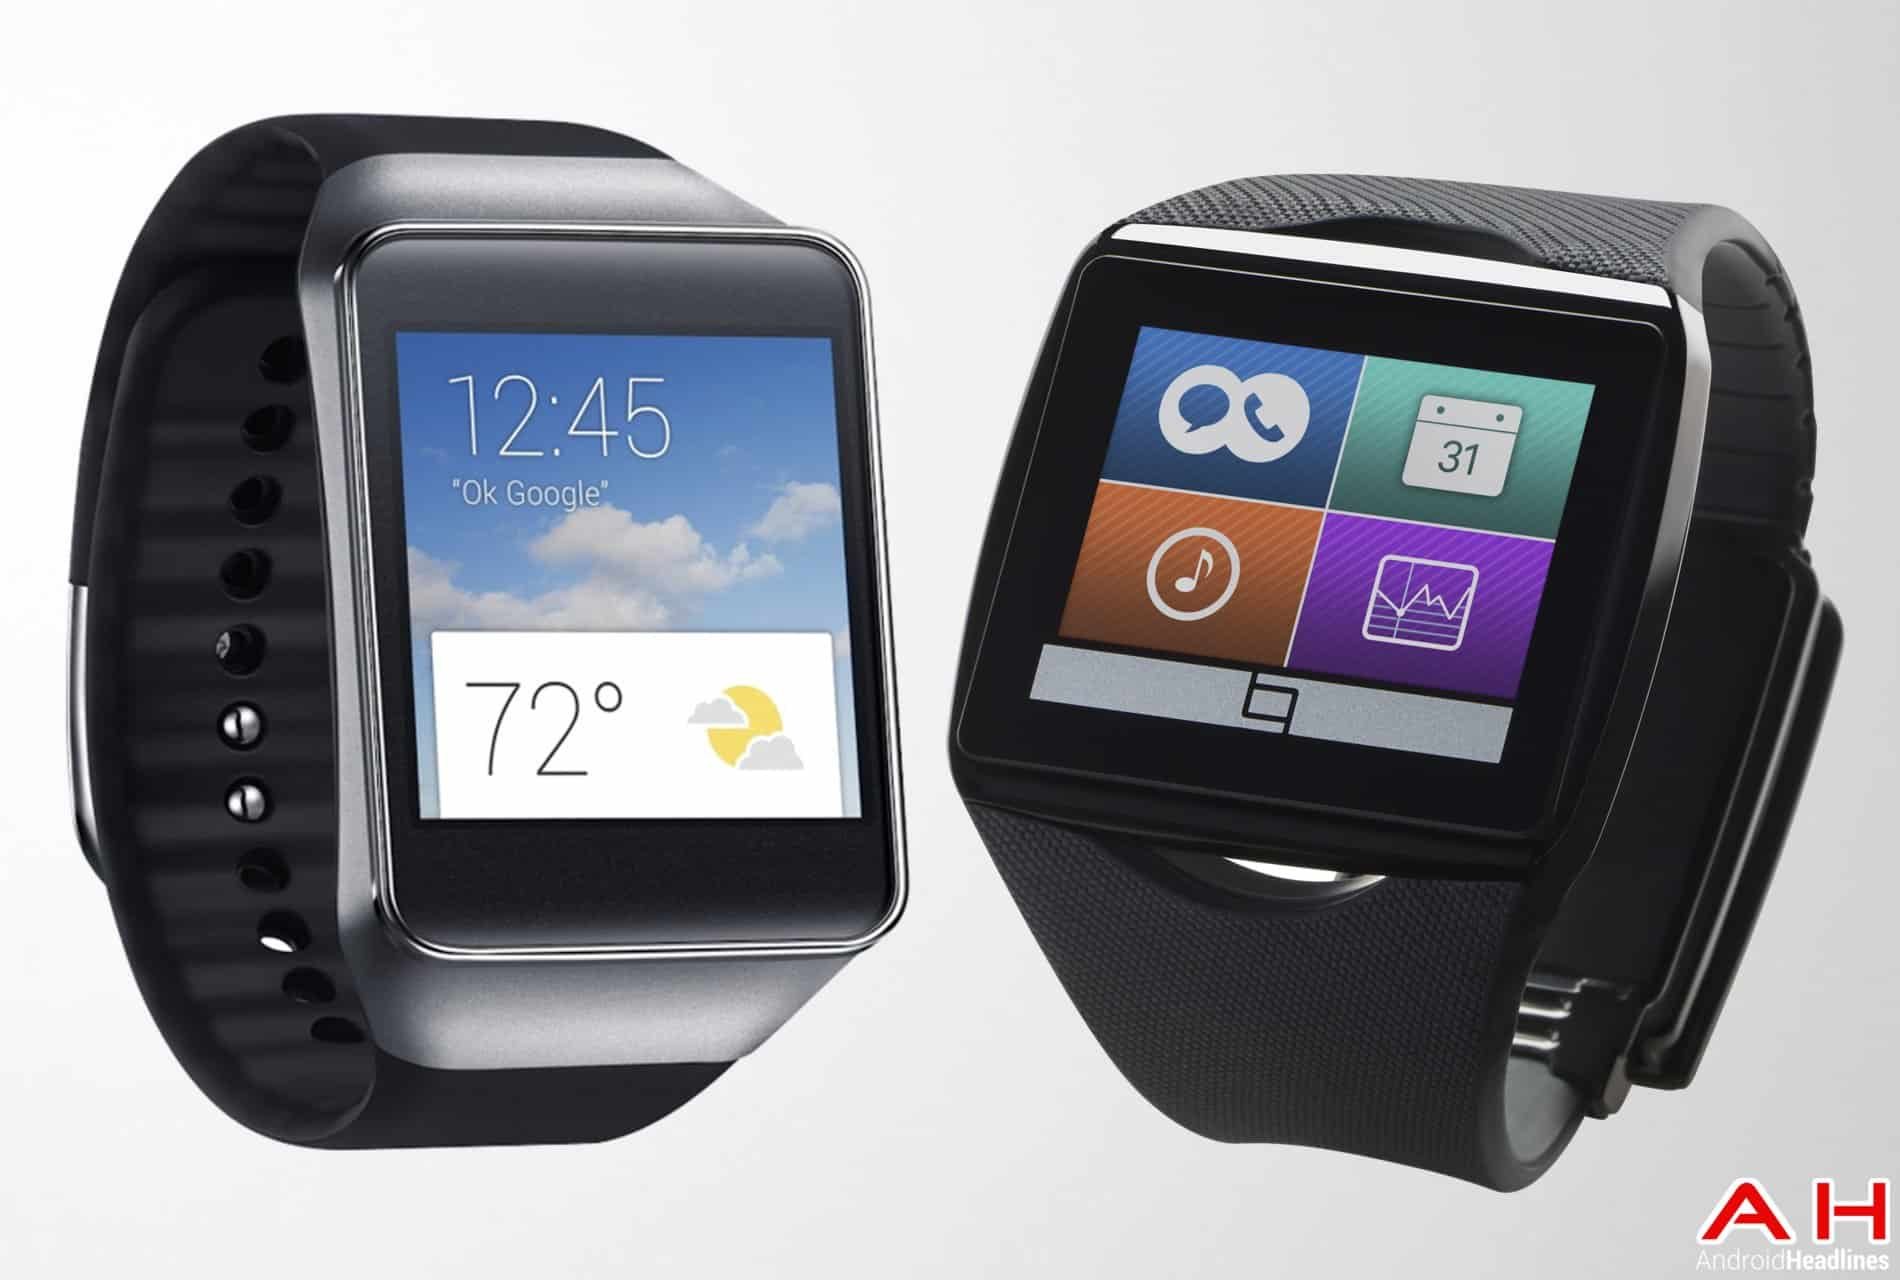 Smartwatch Comparisons: Samsung Gear Live vs Qualcomm Toq